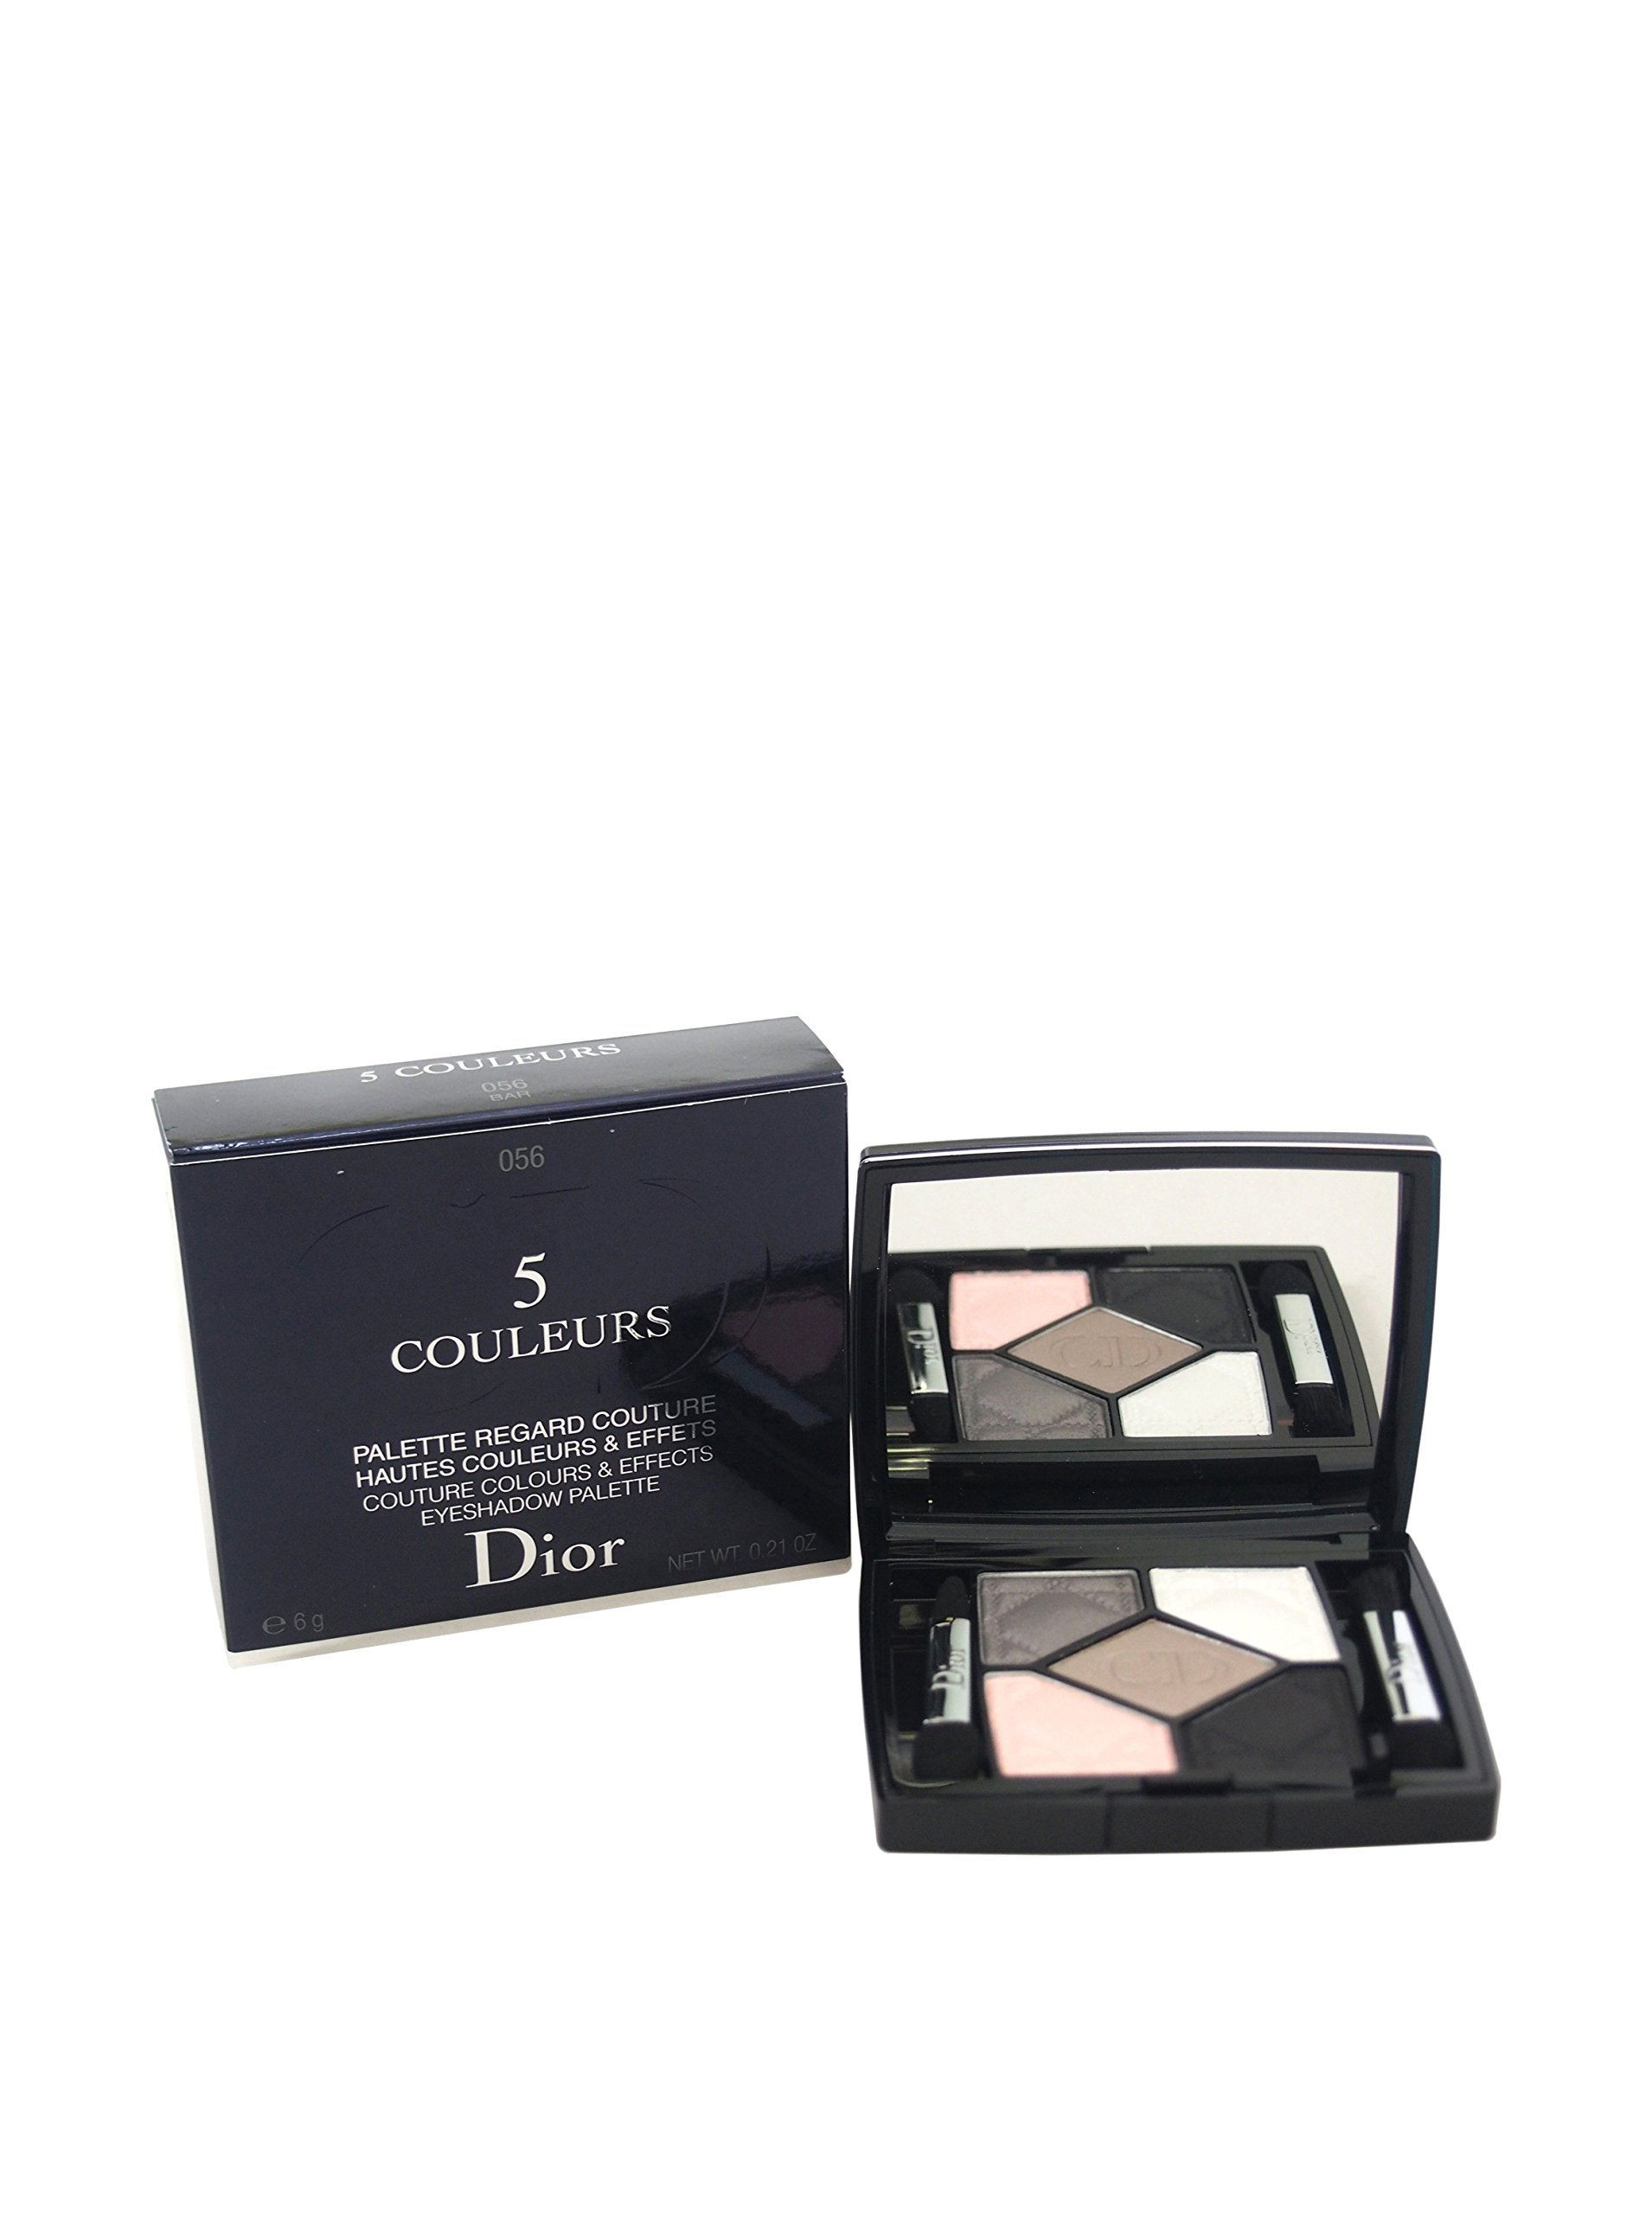 Christian Dior 5 Couleurs Couture Colors and Effects Eye Shadow, Palette No. 056 Bar, 0.21 Ounce